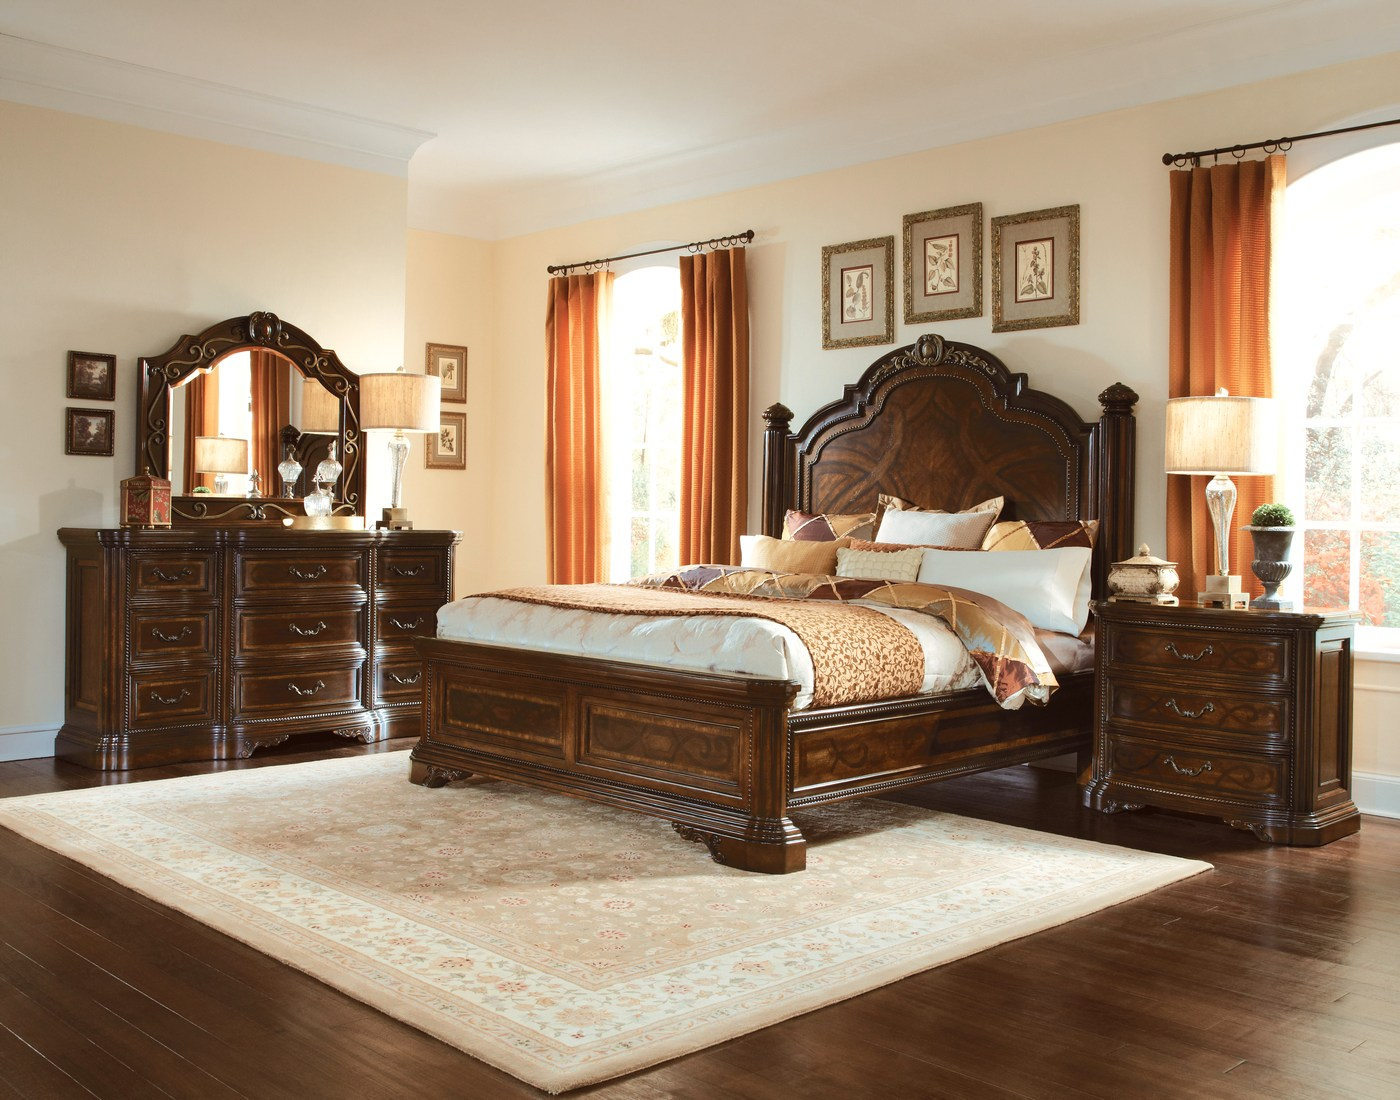 Valencia Carved Wood Traditional Bedroom Furniture Set 209000 Pertaining To Bedroom Sofas And Chairs (View 2 of 15)